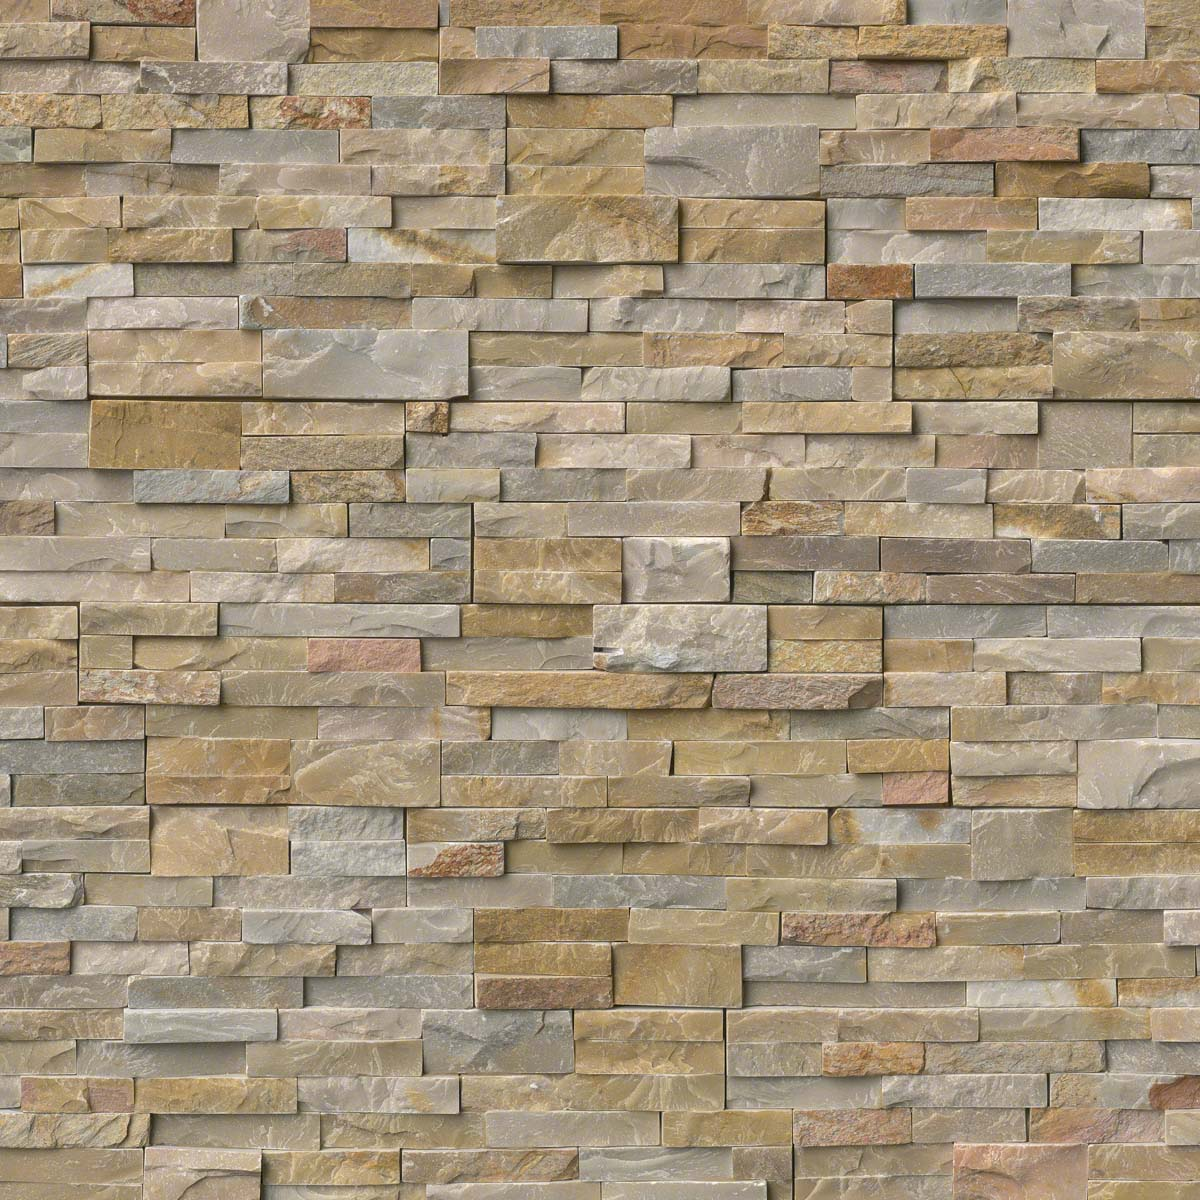 3d Wallpaper Or Wall Panel Or Wall Panels Stacked Stone Outdoor Stone Products Cultured Stone Travertine Pavers